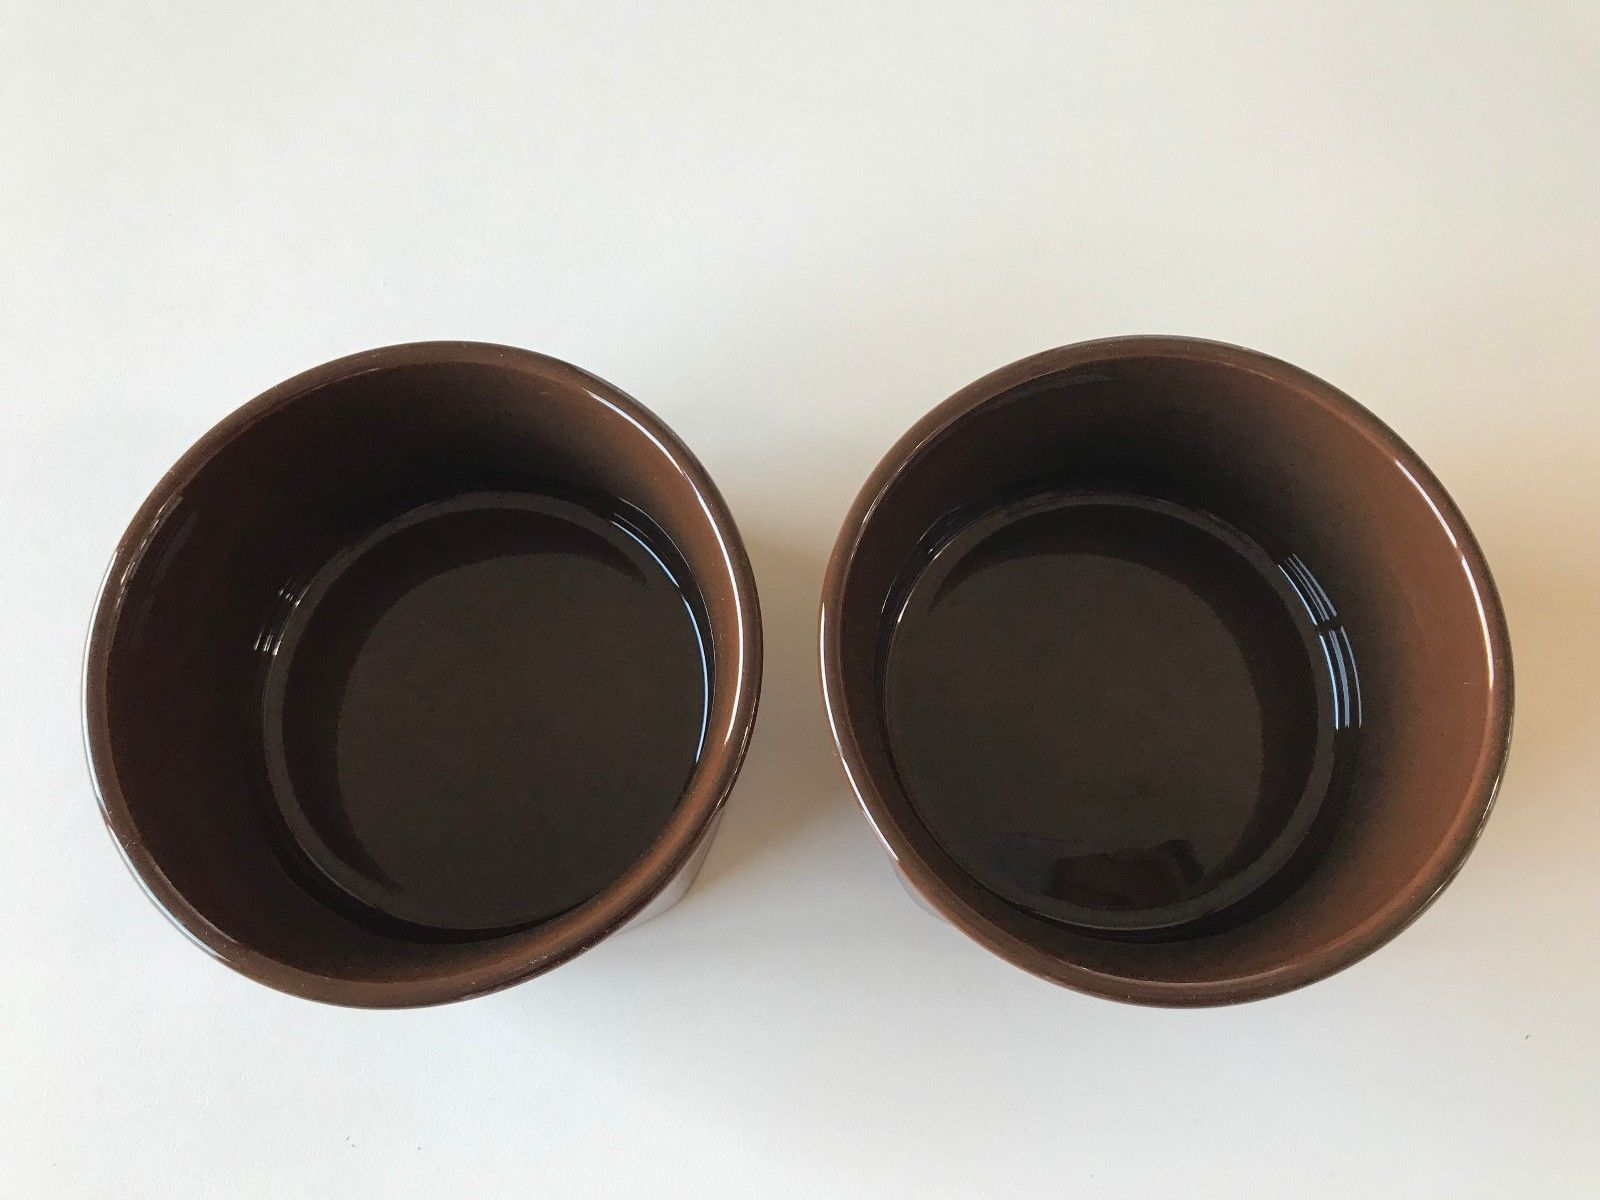 Fiesta®  CHOCOLATE (BROWN) - Post 86 - 19 oz. Square Bowl - NEW SET OF 2